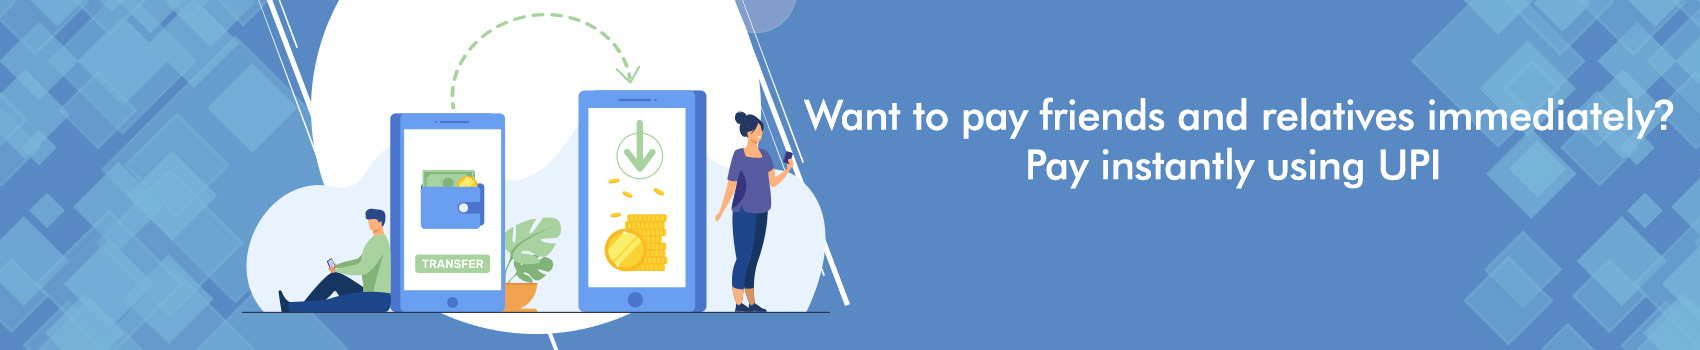 Want to pay friends and relatives immediately? Pay instantly using UPI